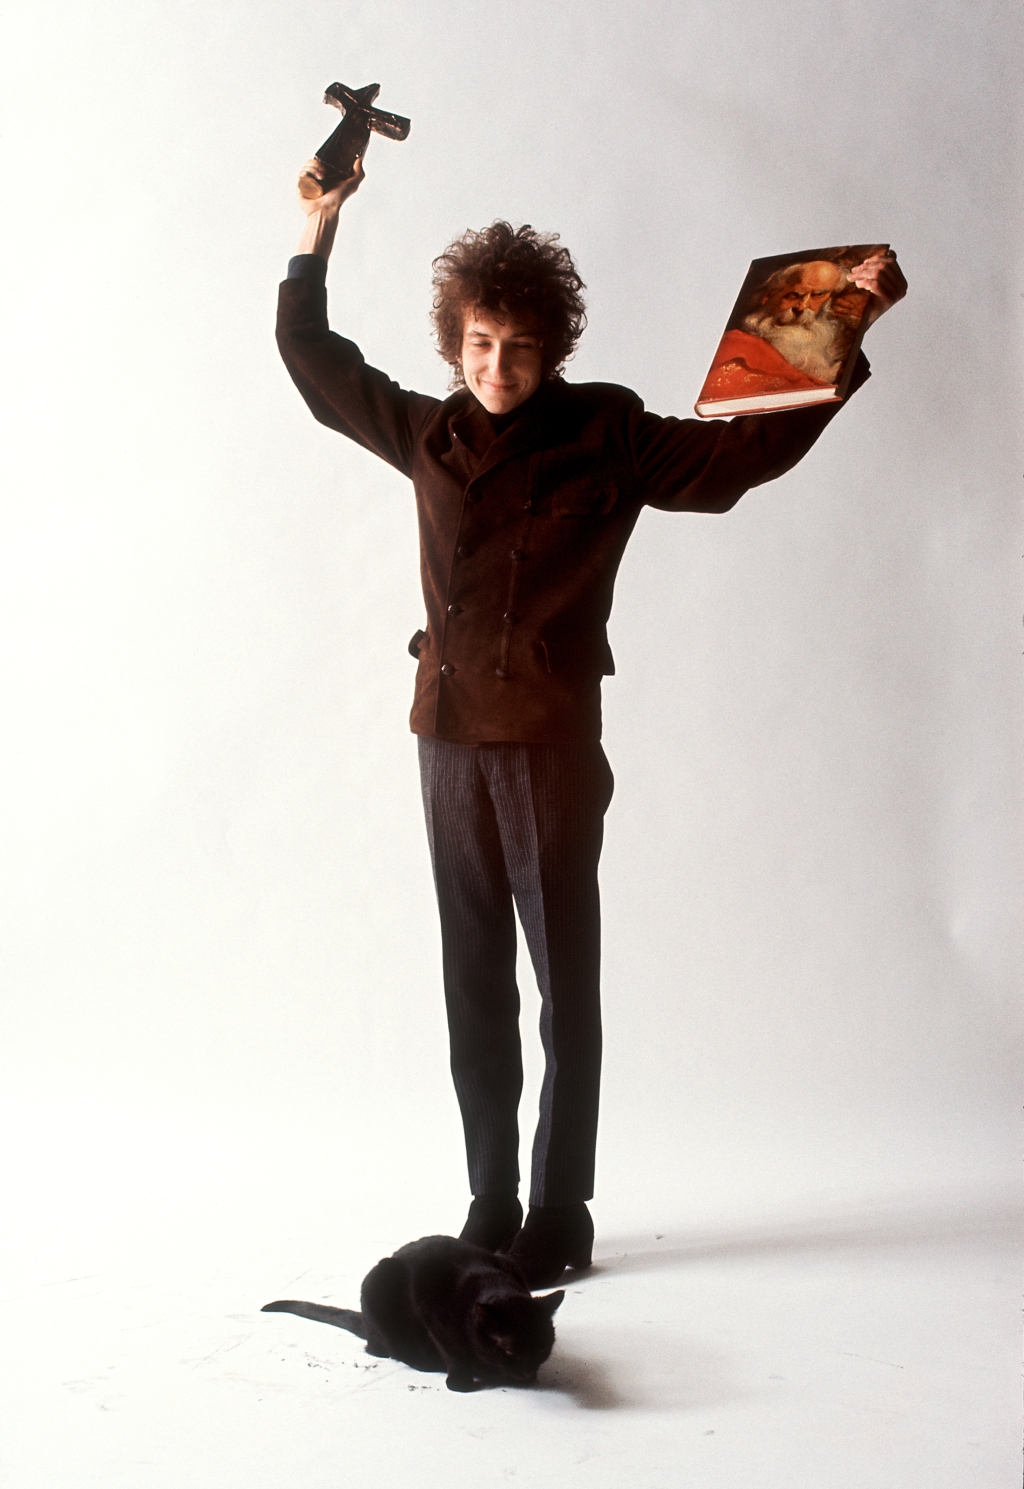 "When Dylan arrived at his New York studio, Schatzberg handed him props and encouraged him to pose however he felt comfortable. ""These were just things I had around the studio,"" he says. ""I would just take something and see what he would do with it."" [Note: In this photo he's wearing the same coat that appears on the cover of Blonde on Blonde and John Wesley Harding.]"